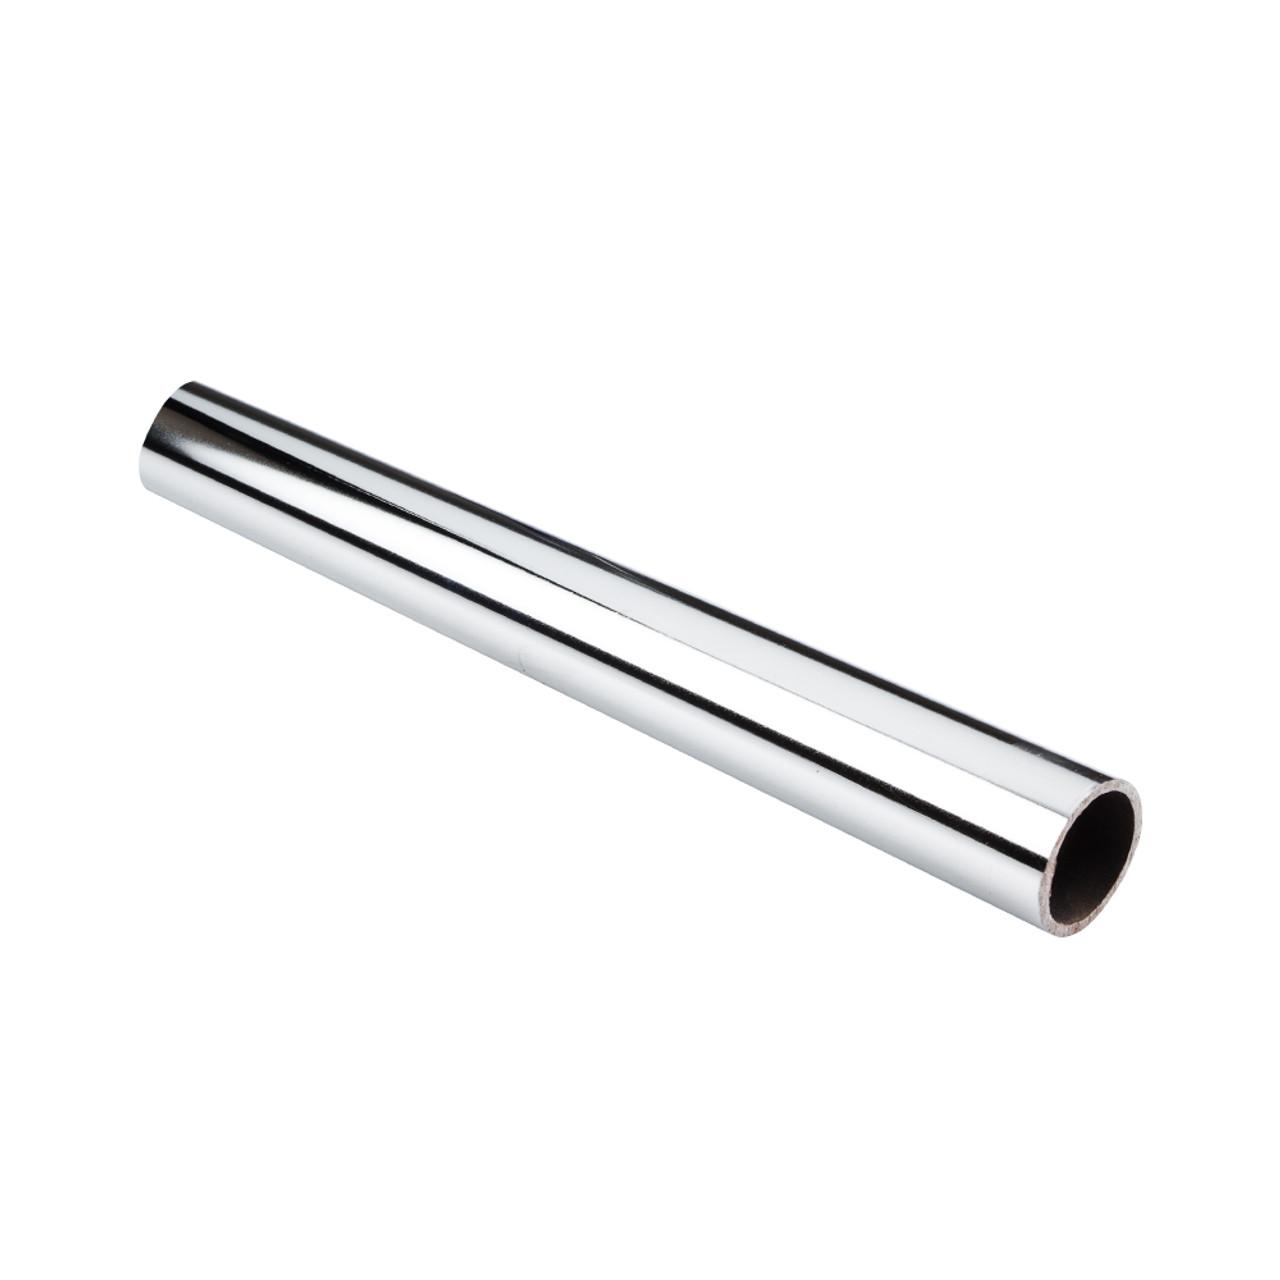 "Chrome 1-1/16"" Diameter x 8' Long Round Steel Closet Rod"